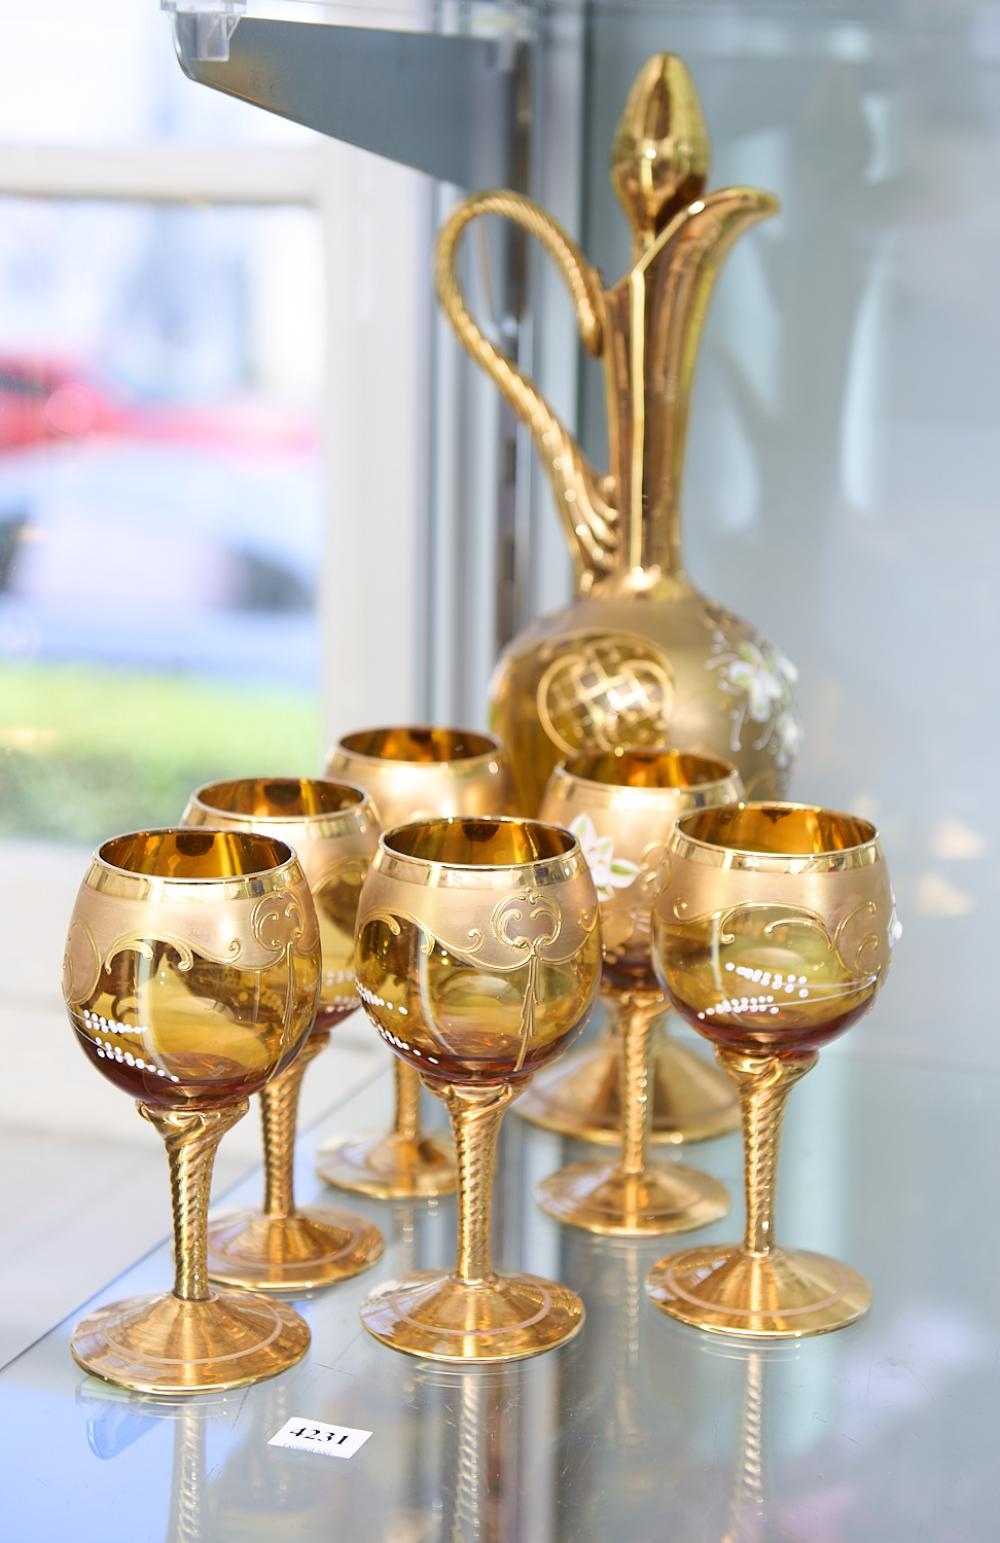 A SET OF LAGUNA MURANO GLASSES TOGETHER WITH DECANTER H.39CM, LEONARD JOEL LOCAL DELIVERY SIZE: MEDIUM